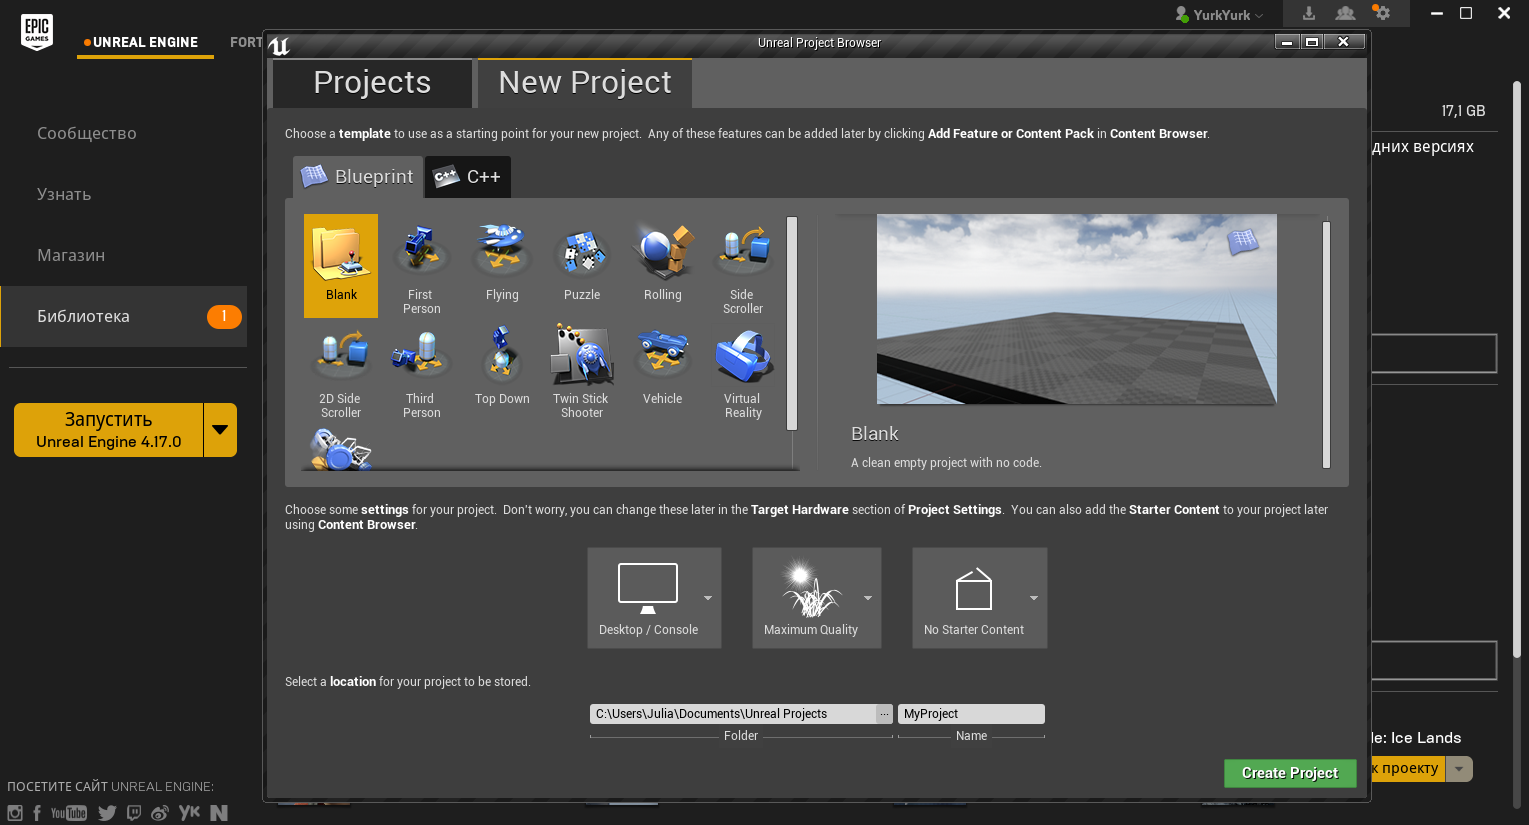 New project window in UE4